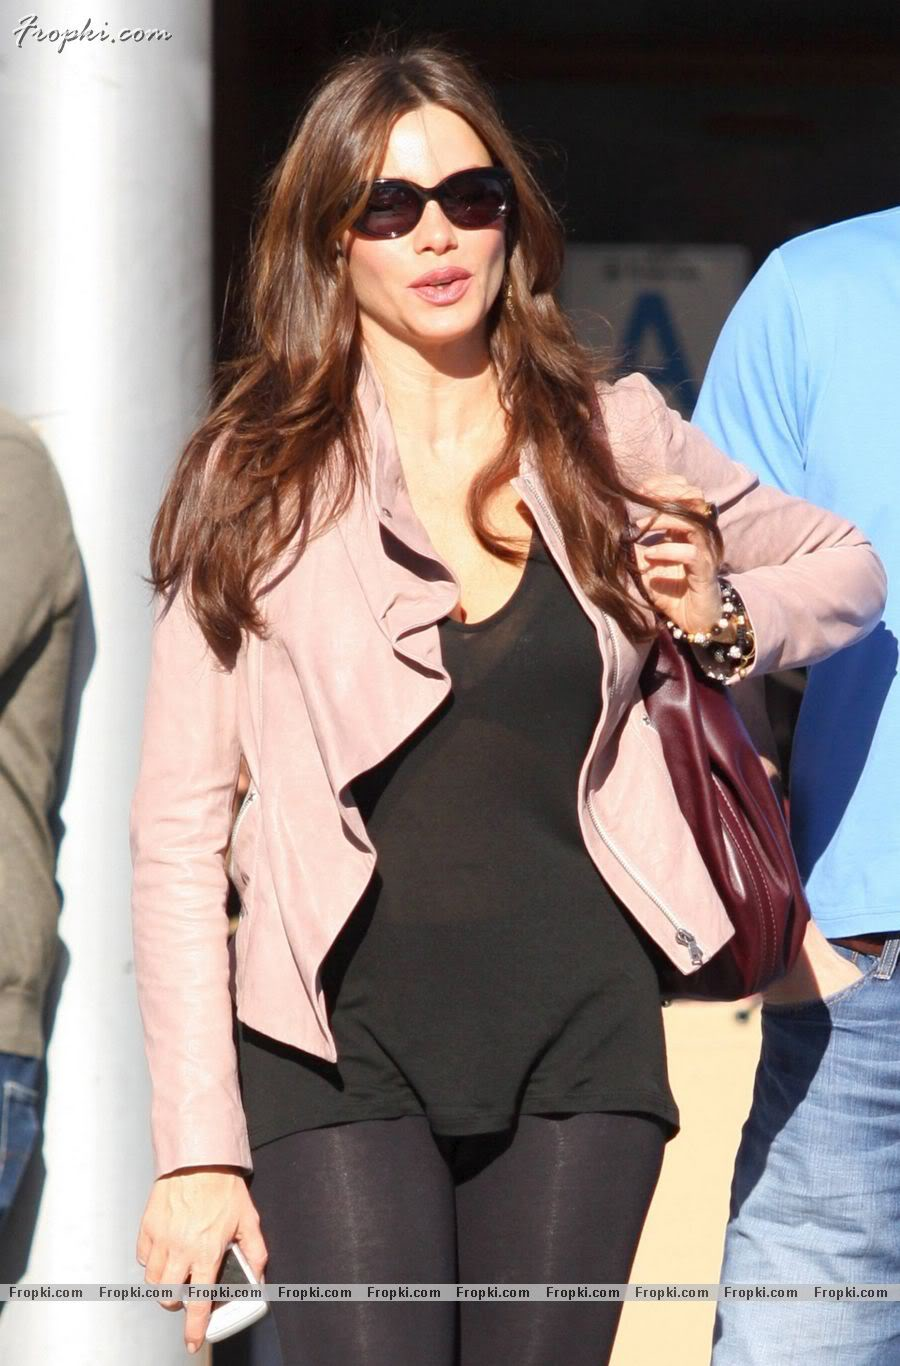 Sofia Vergara in See-Thru Shirt and Slacks